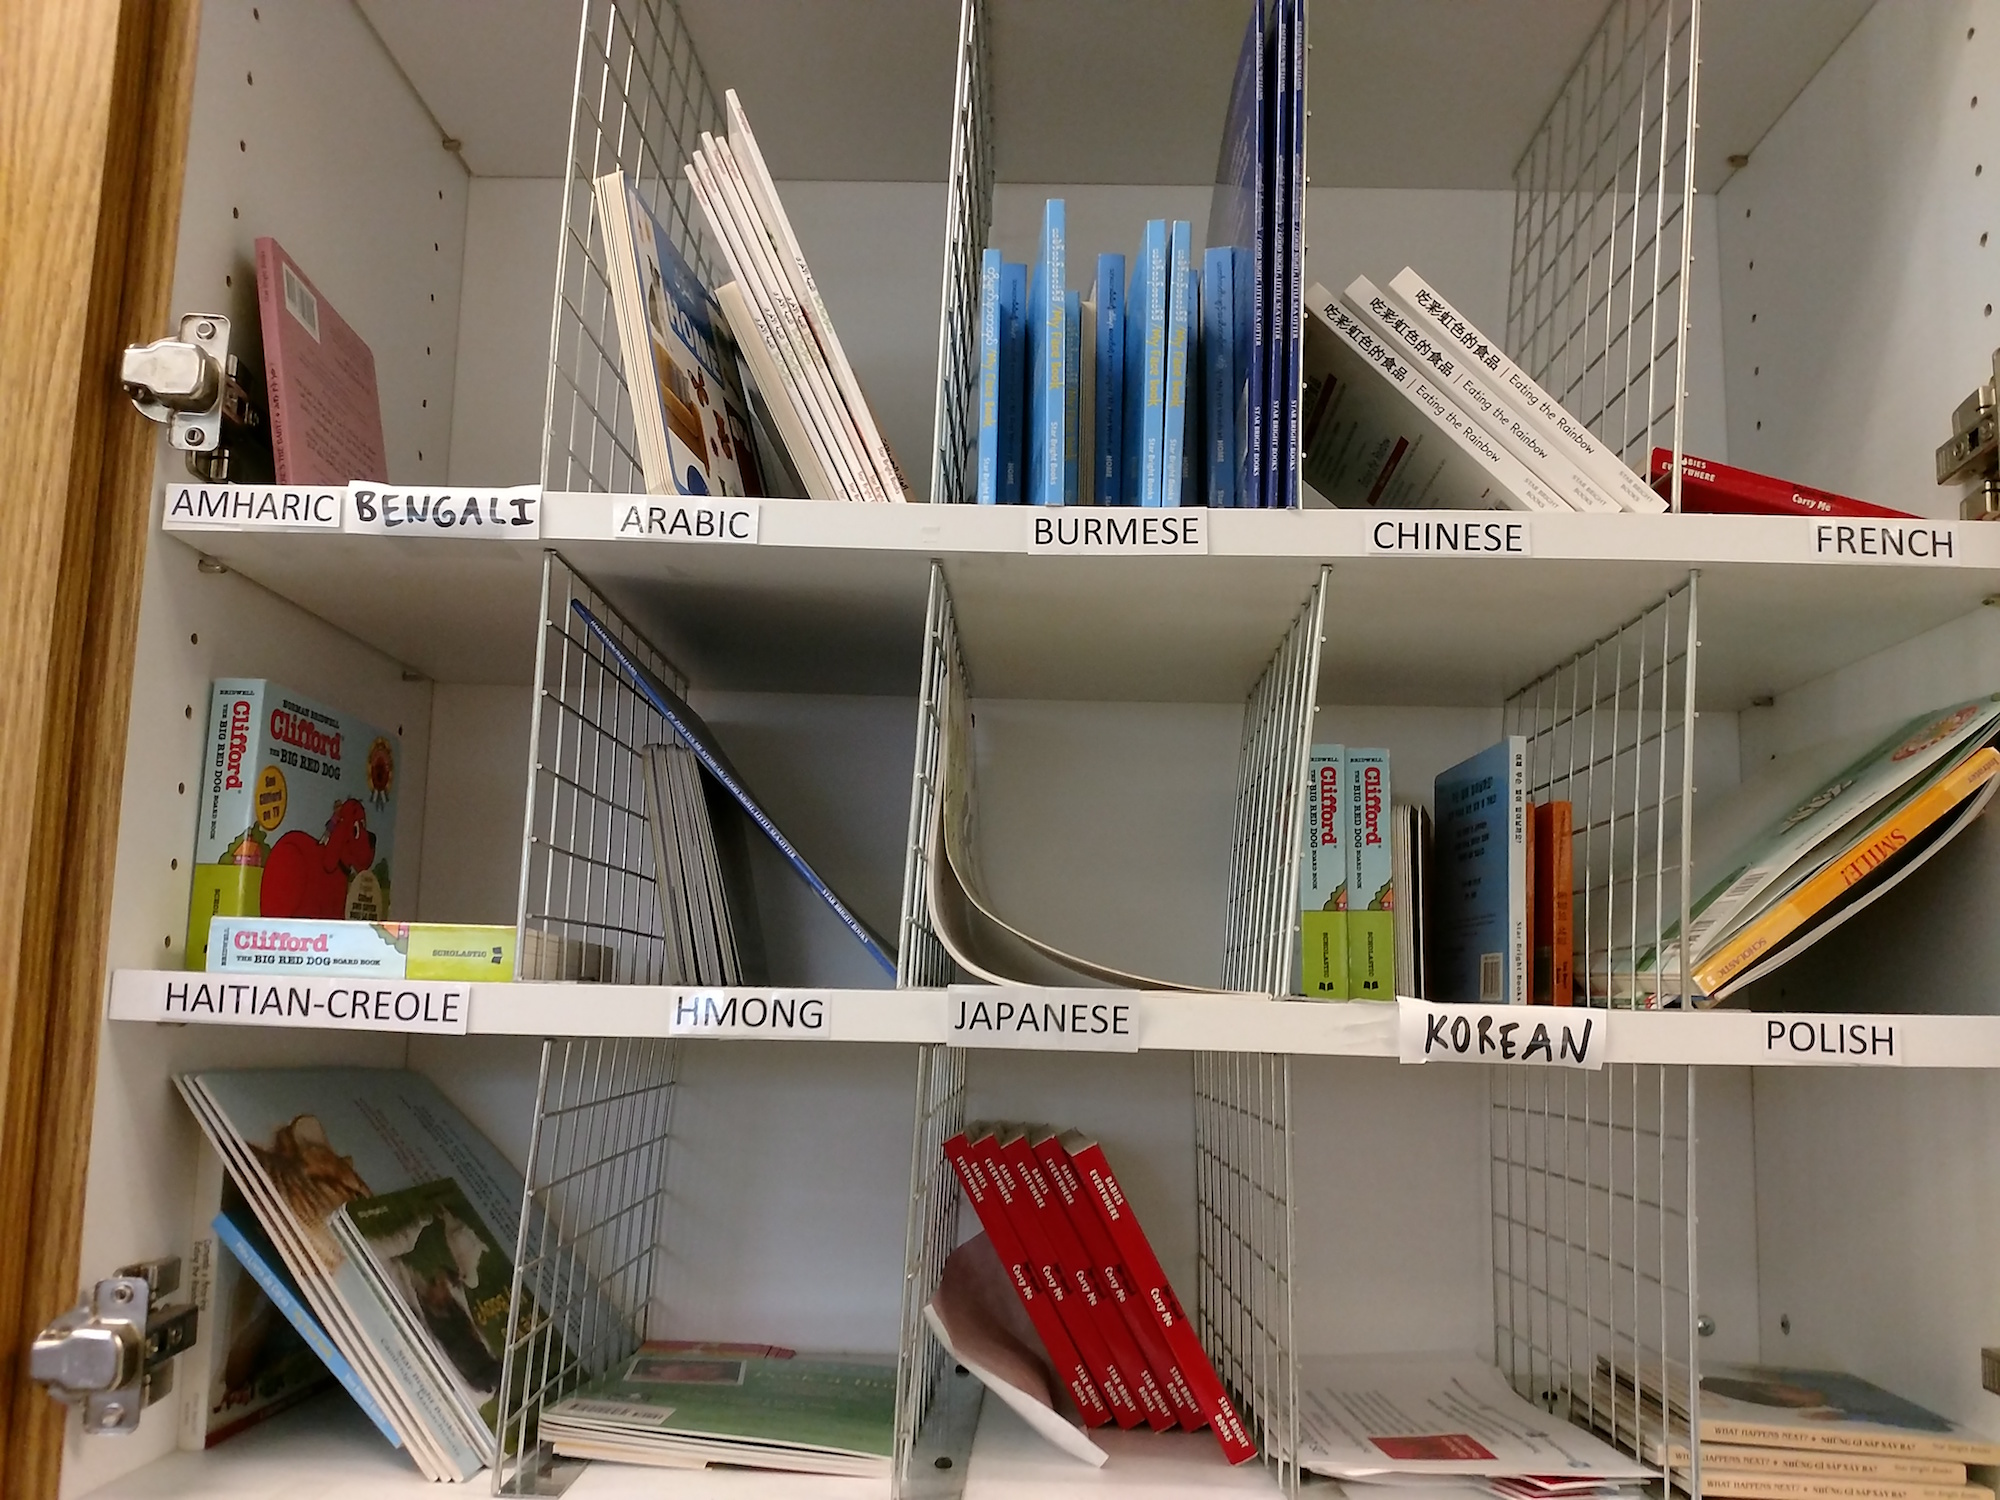 How to find kids' books? These pediatricians prescribe them